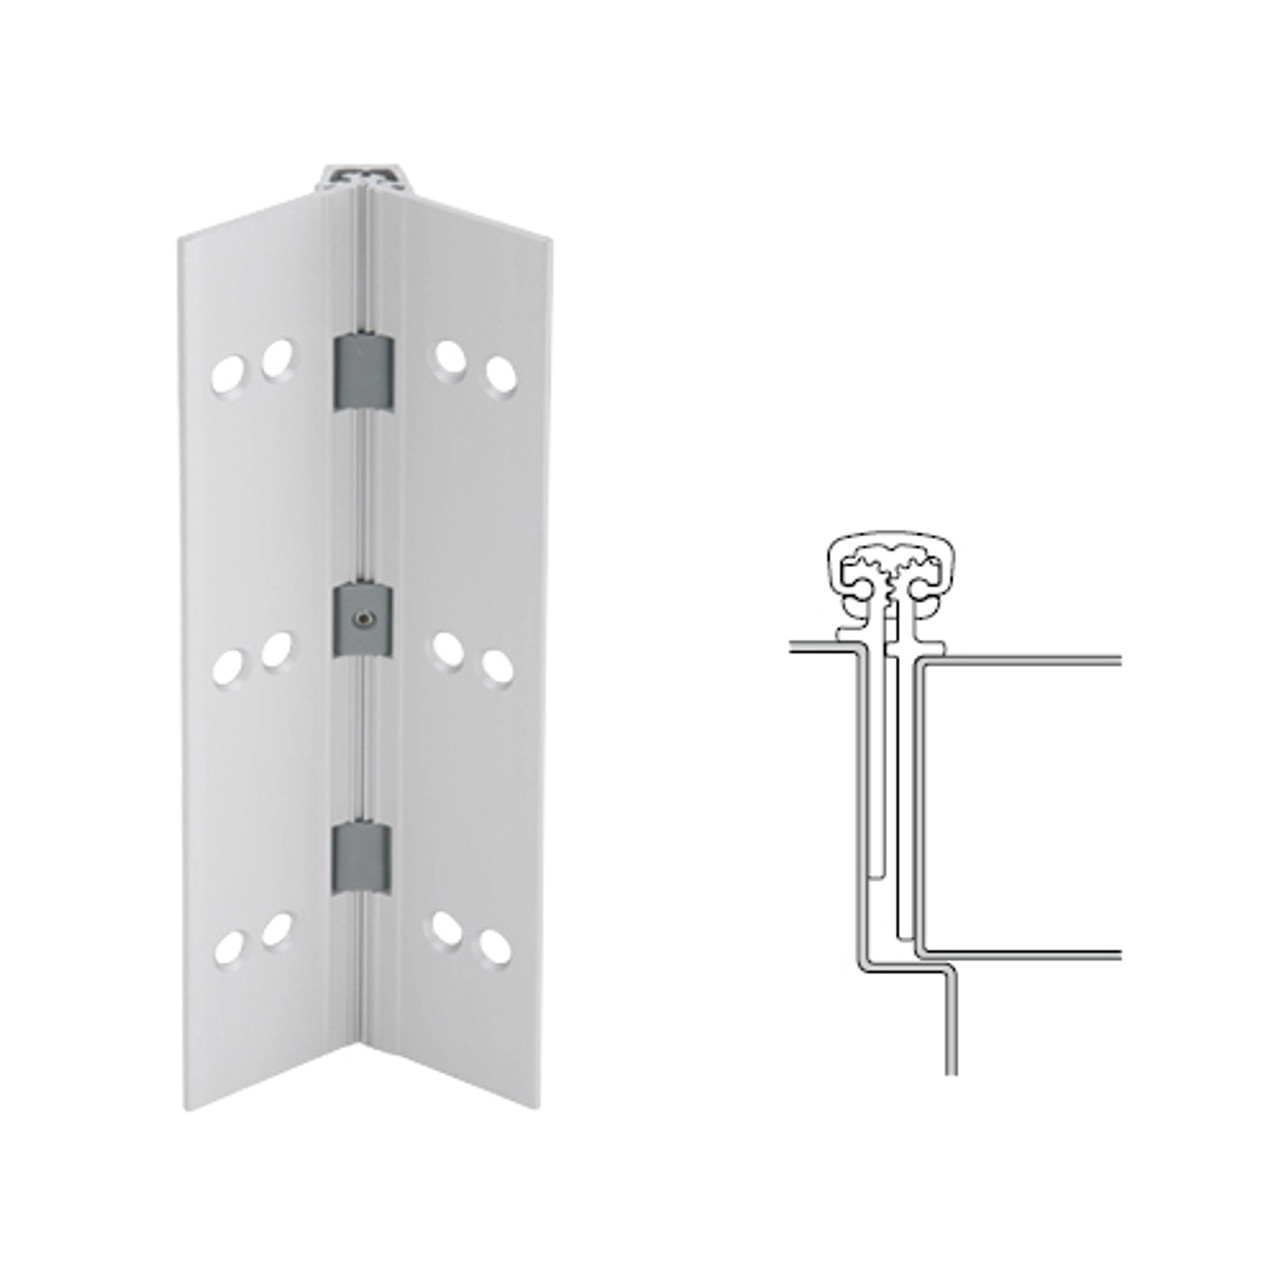 026XY-US28-85-TF IVES Full Mortise Continuous Geared Hinges with Thread Forming Screws in Satin Aluminum